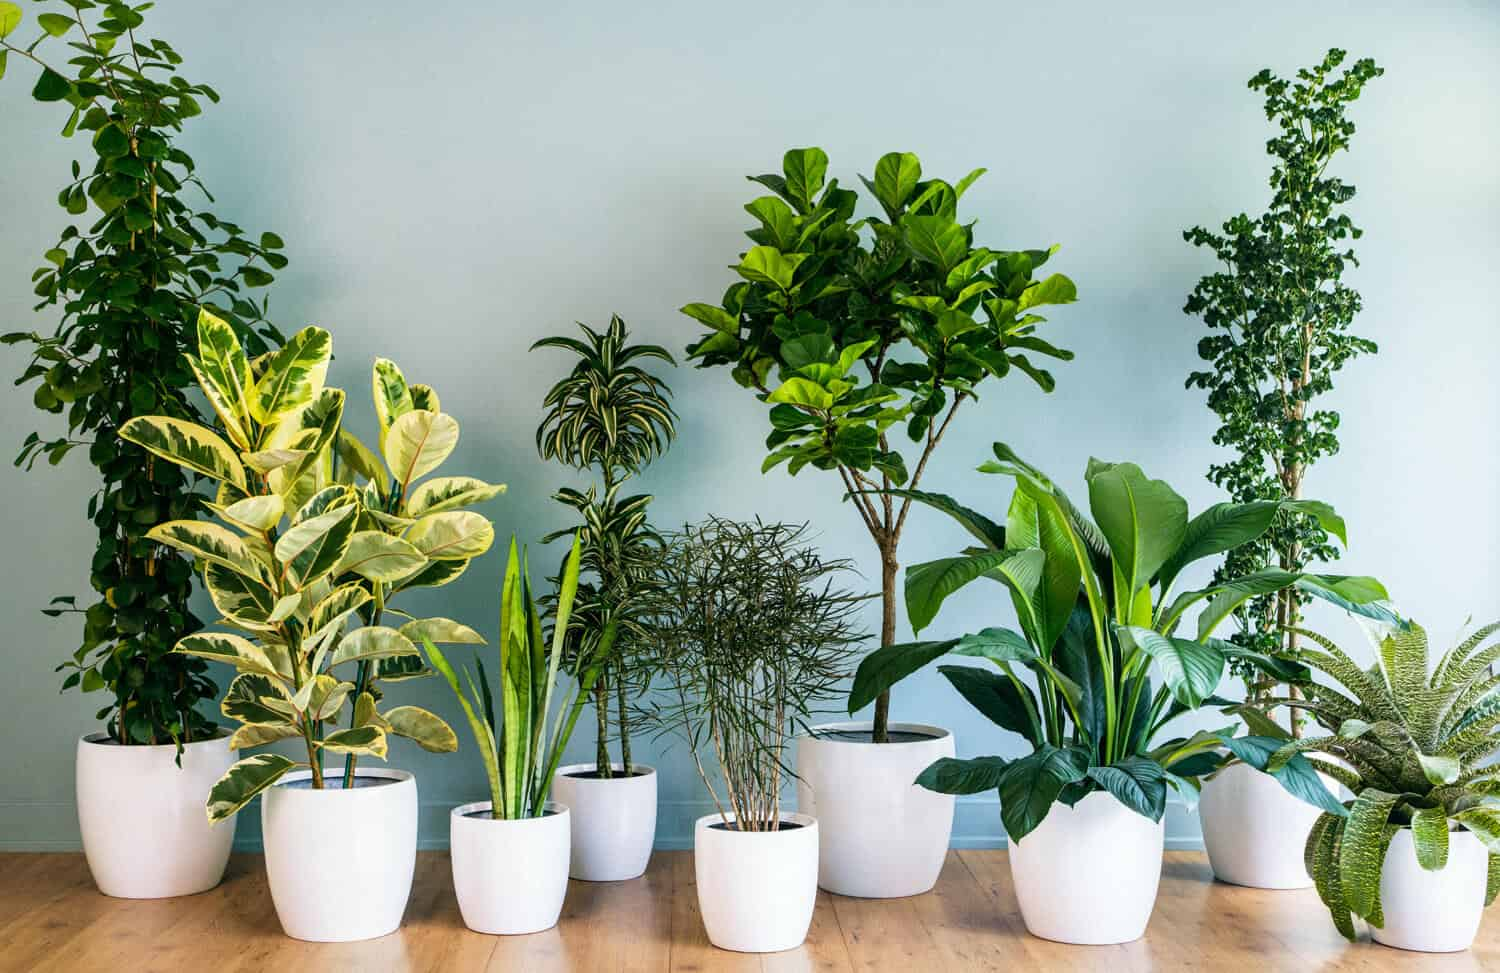 31 low light houseplants that you shouldnt miss out hort zone - Low Light Flowering House Plants